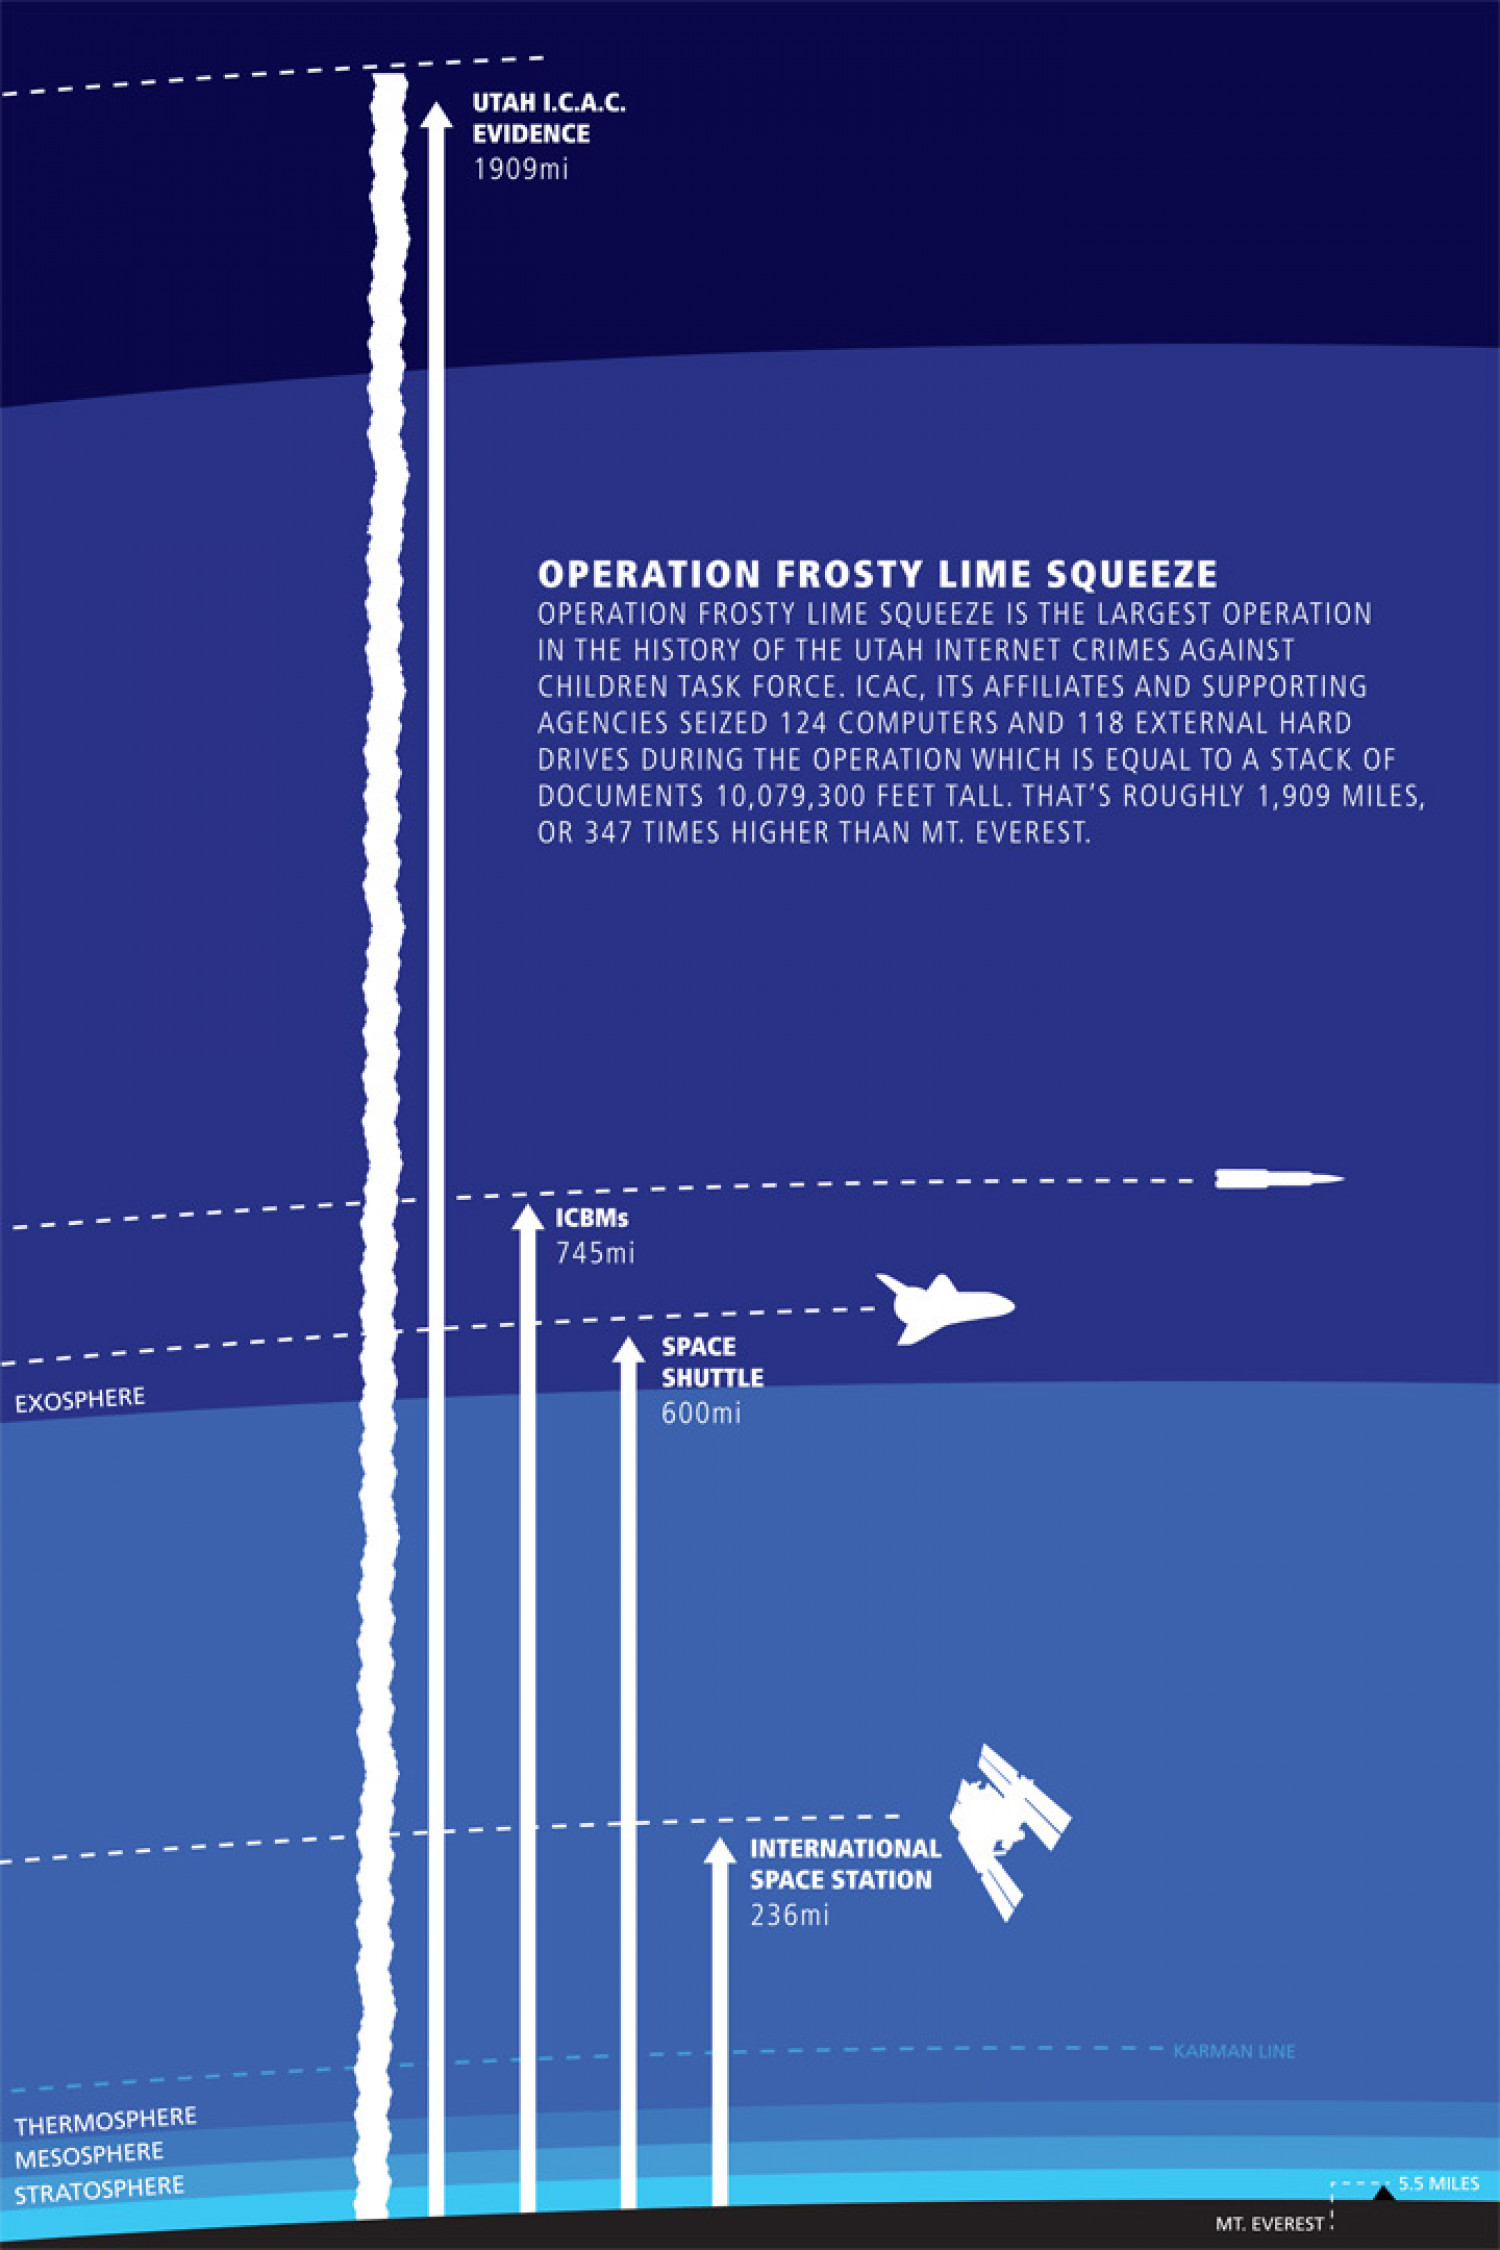 Operation Frosty Lime Squeeze Infographic